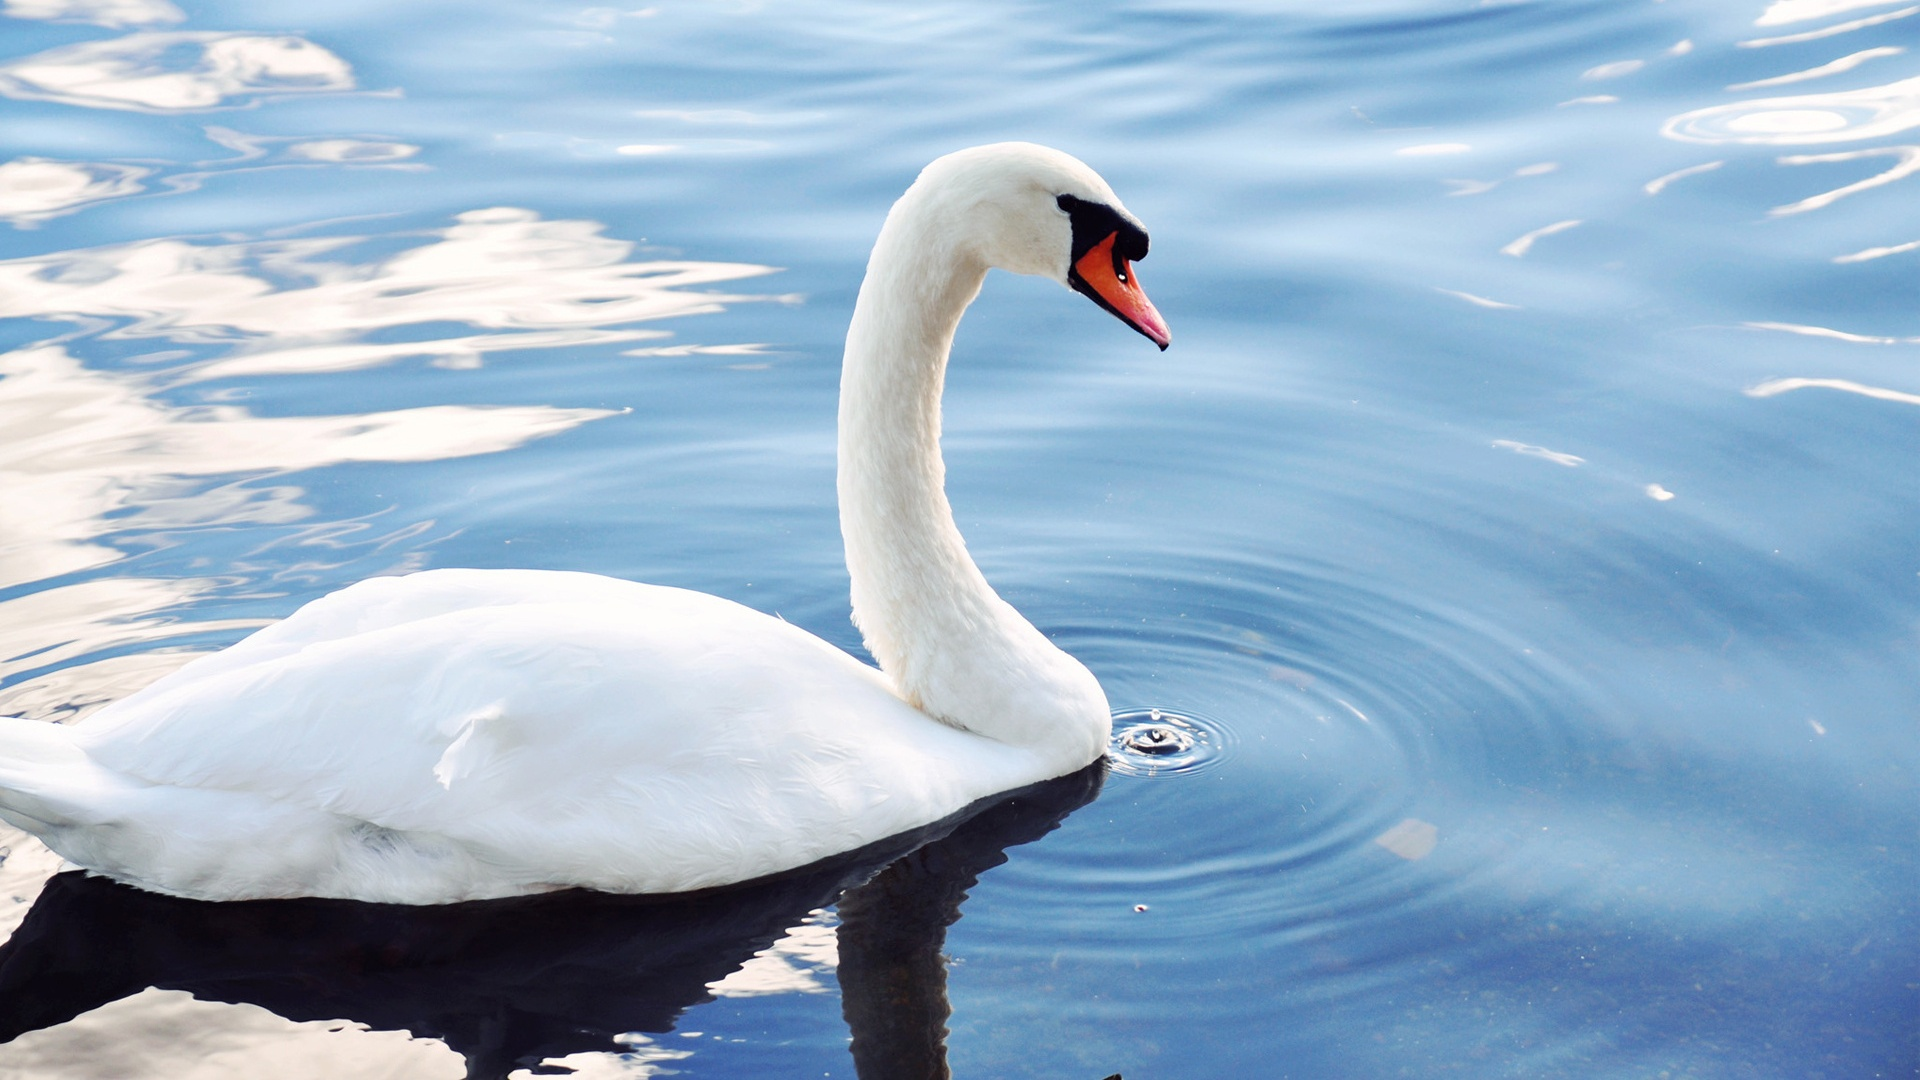 Anime Swan Wallpaper: White Swan Bird Pond Animals Wallpapers 1920x1080px